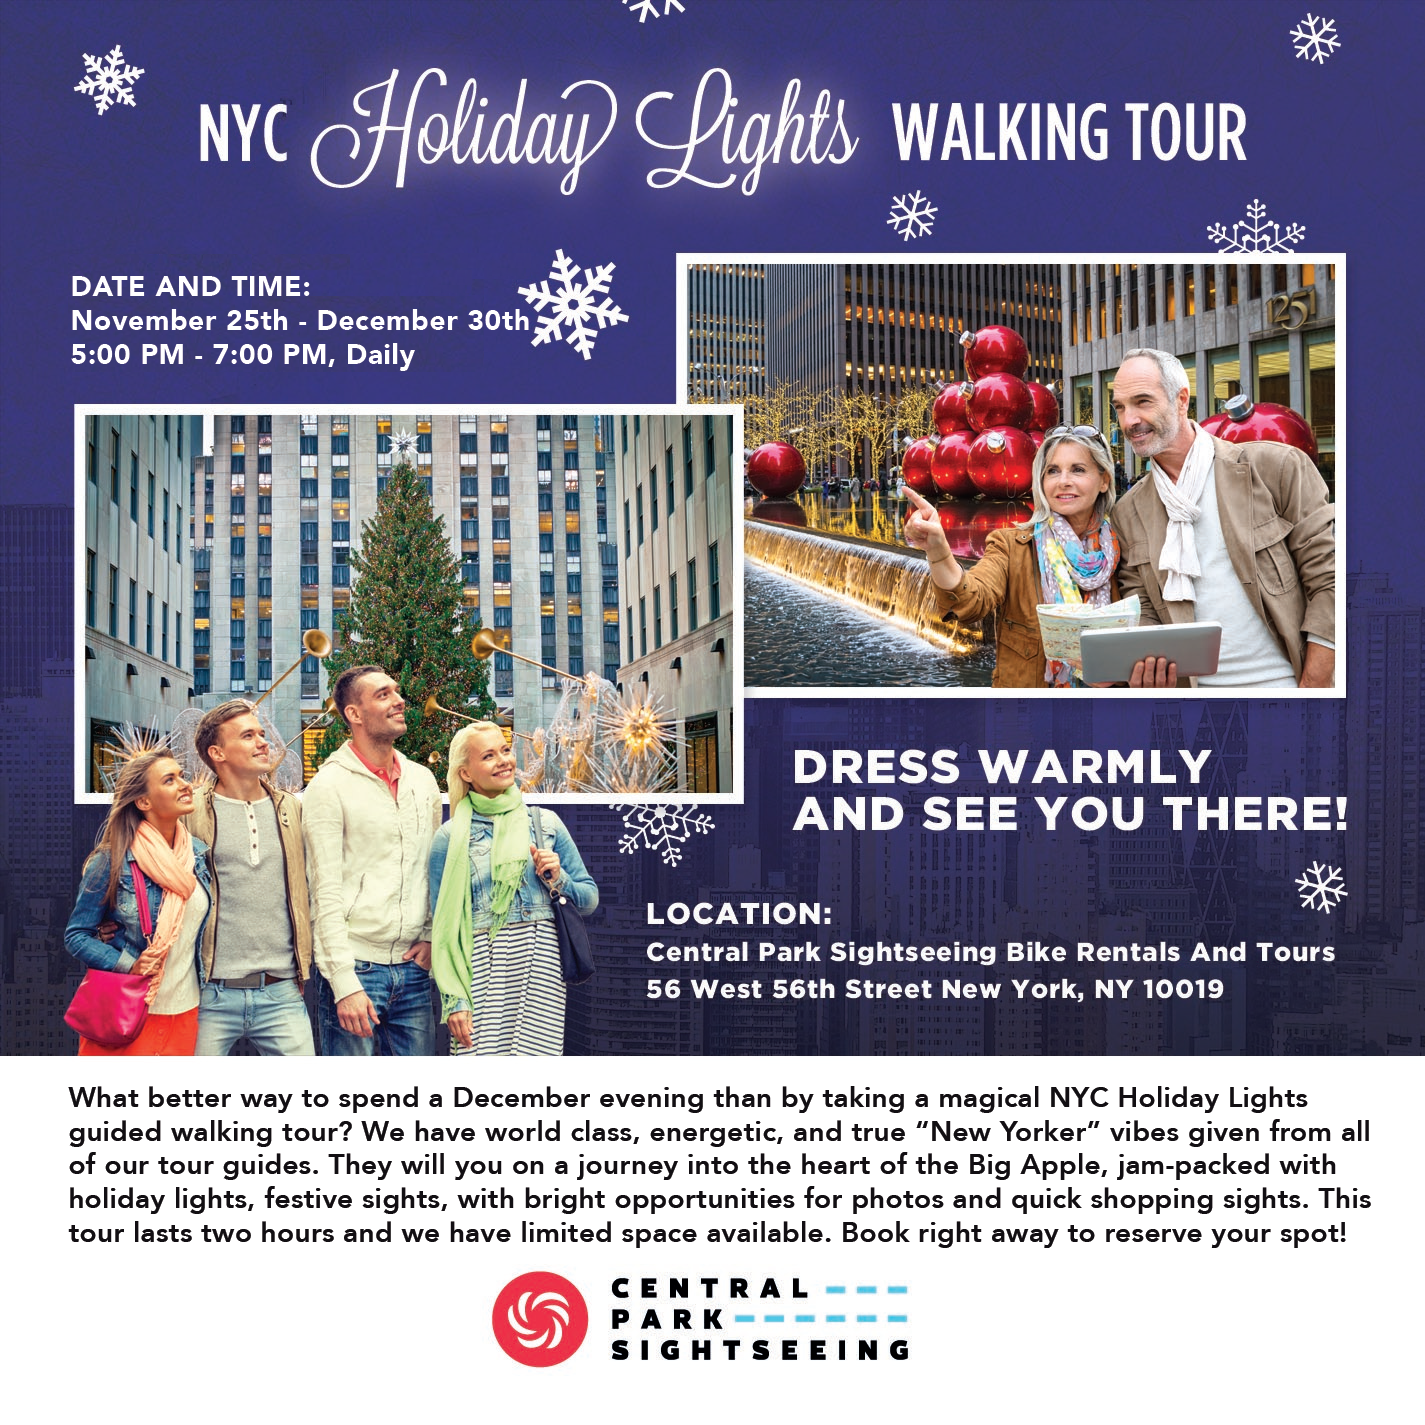 NYC Holiday Lights Walking Tour